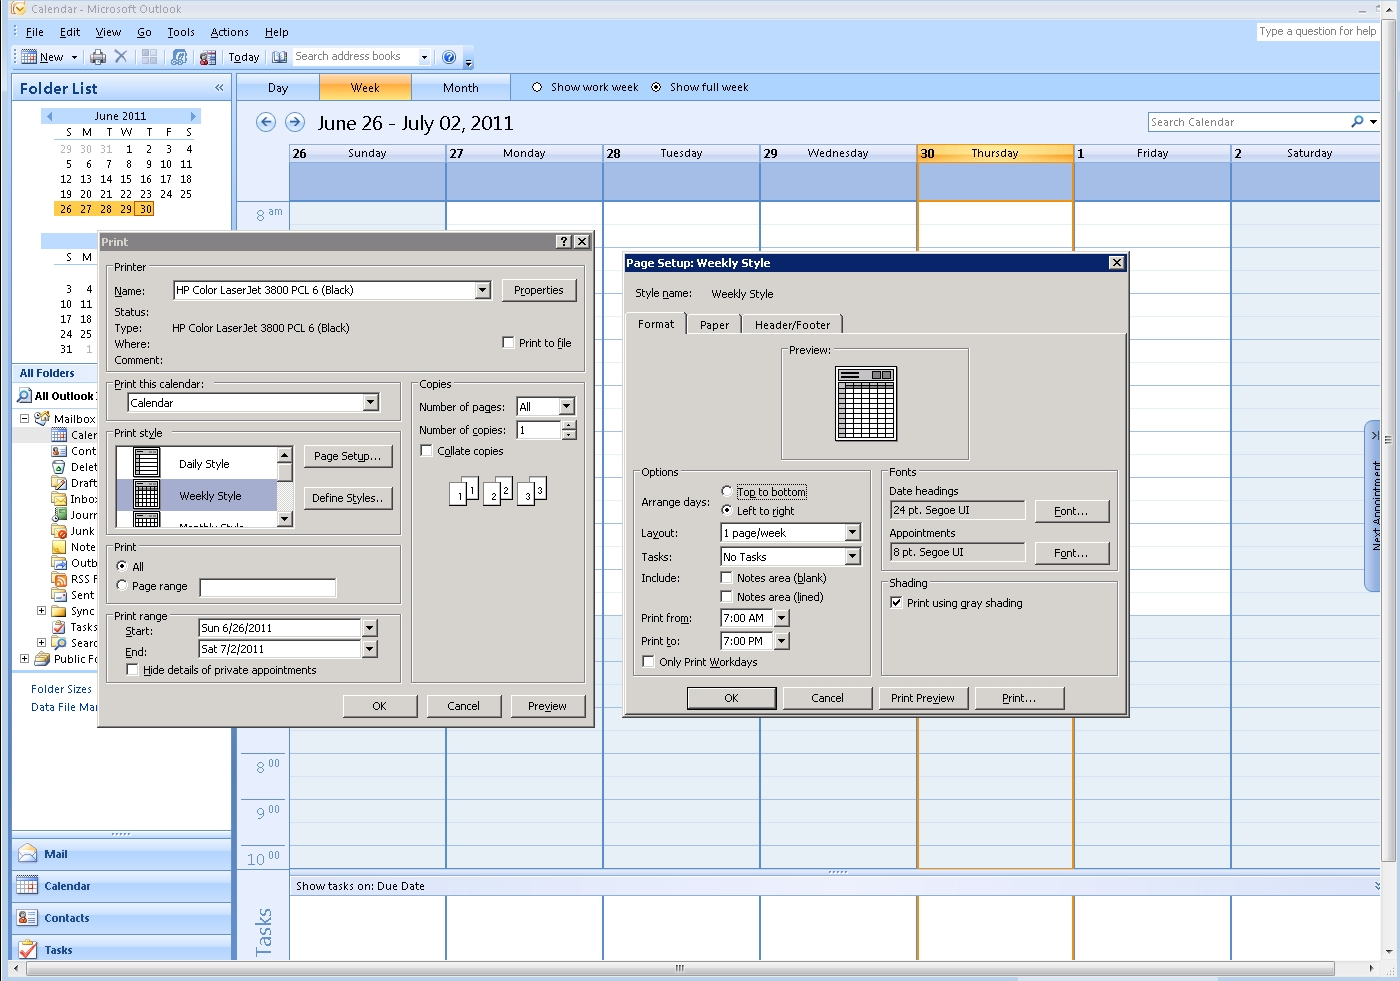 Can Ms Outlook 2007 Print The Entire Day's Schedule, In The